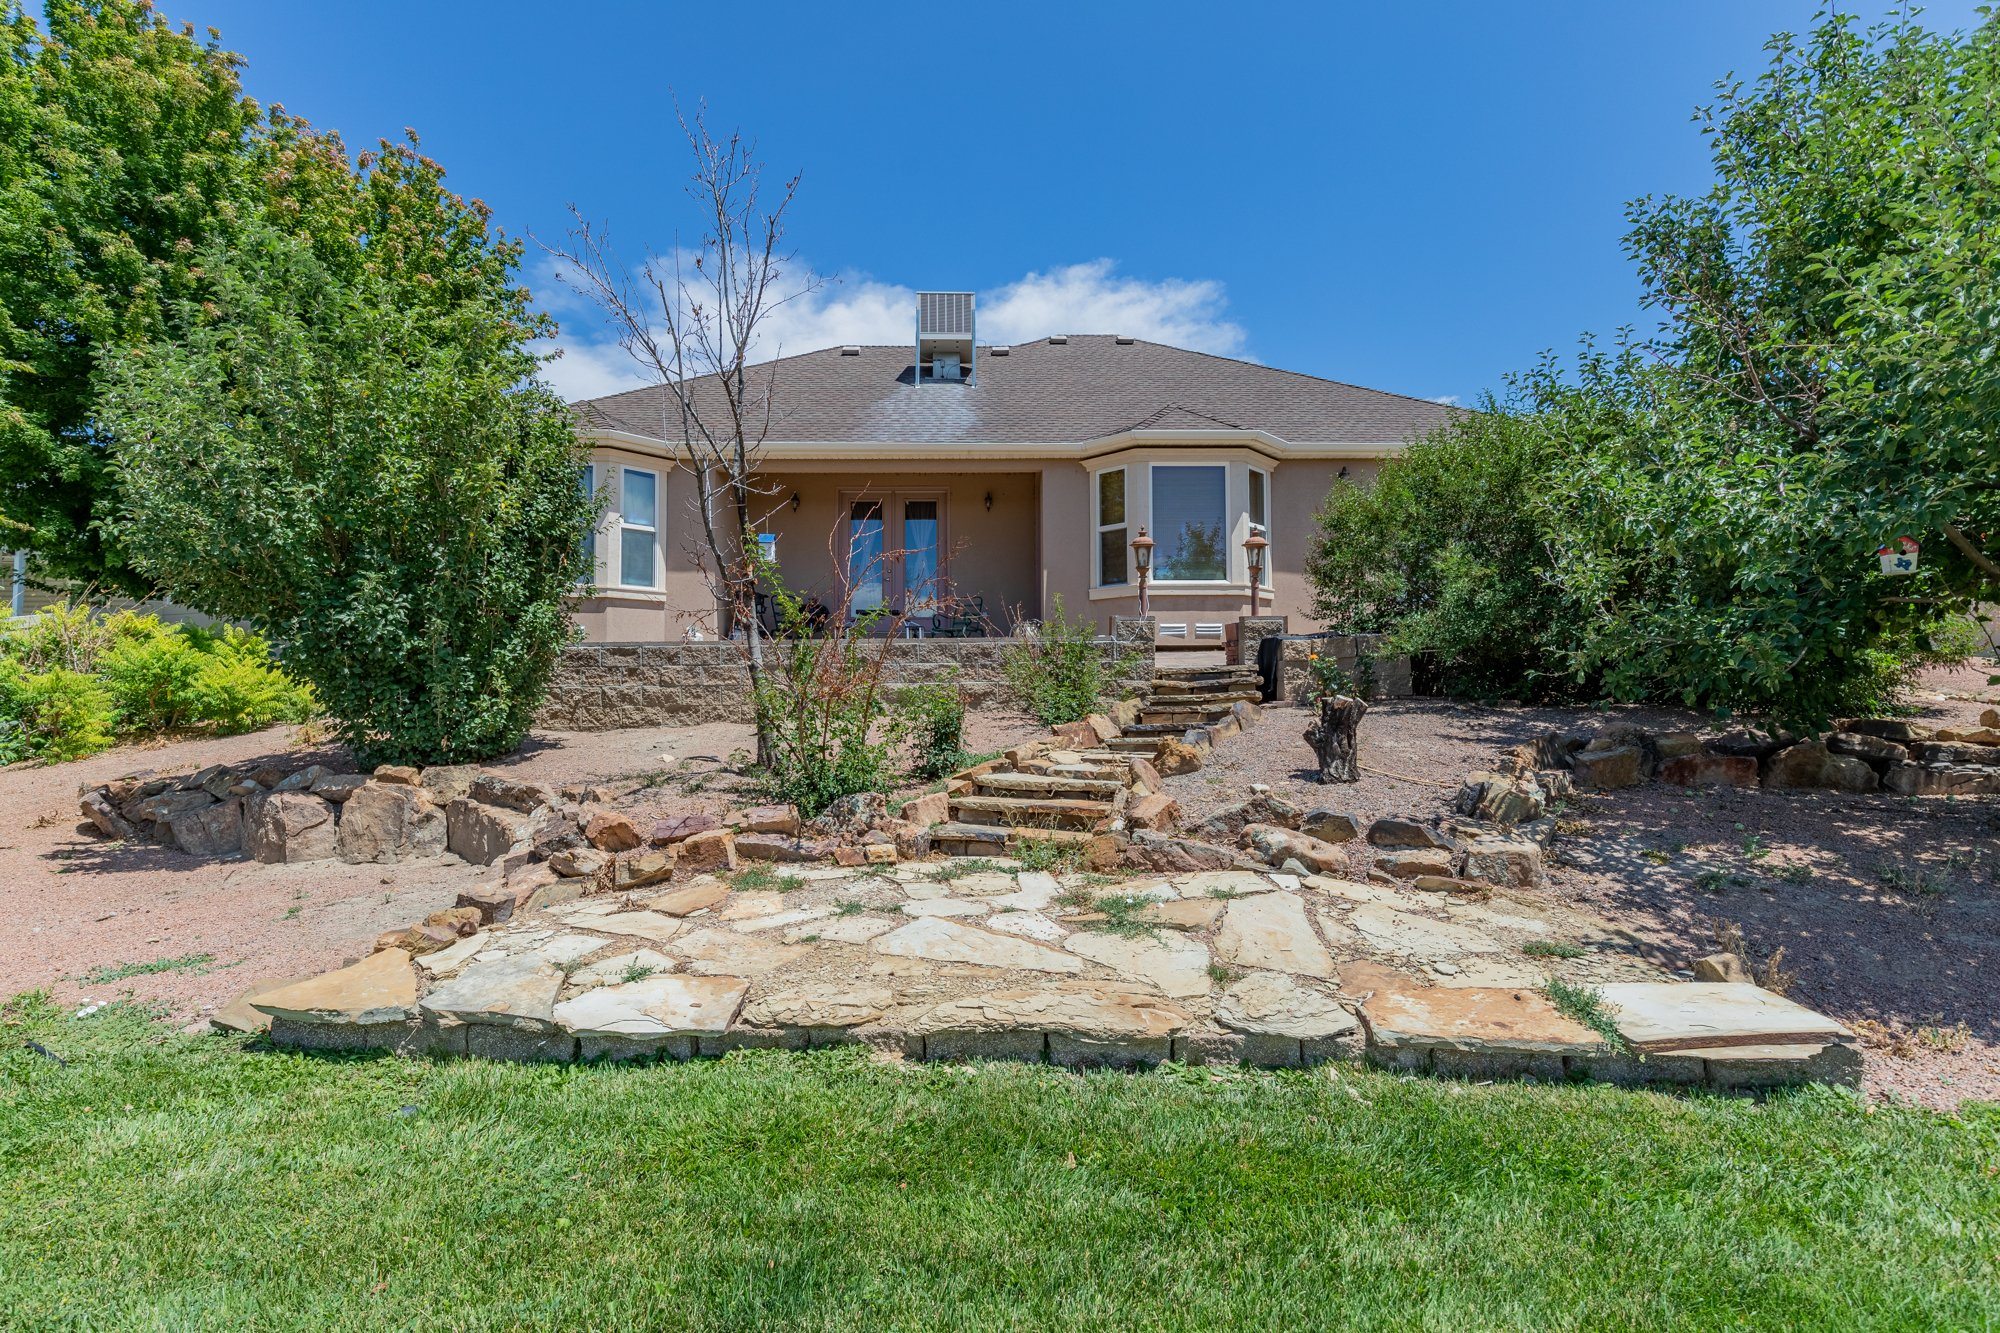 Back Yard with Landscaping - 2924 Lost Creek Rd S. Montrose, CO 81401 - Atha Team Real Estate Agents